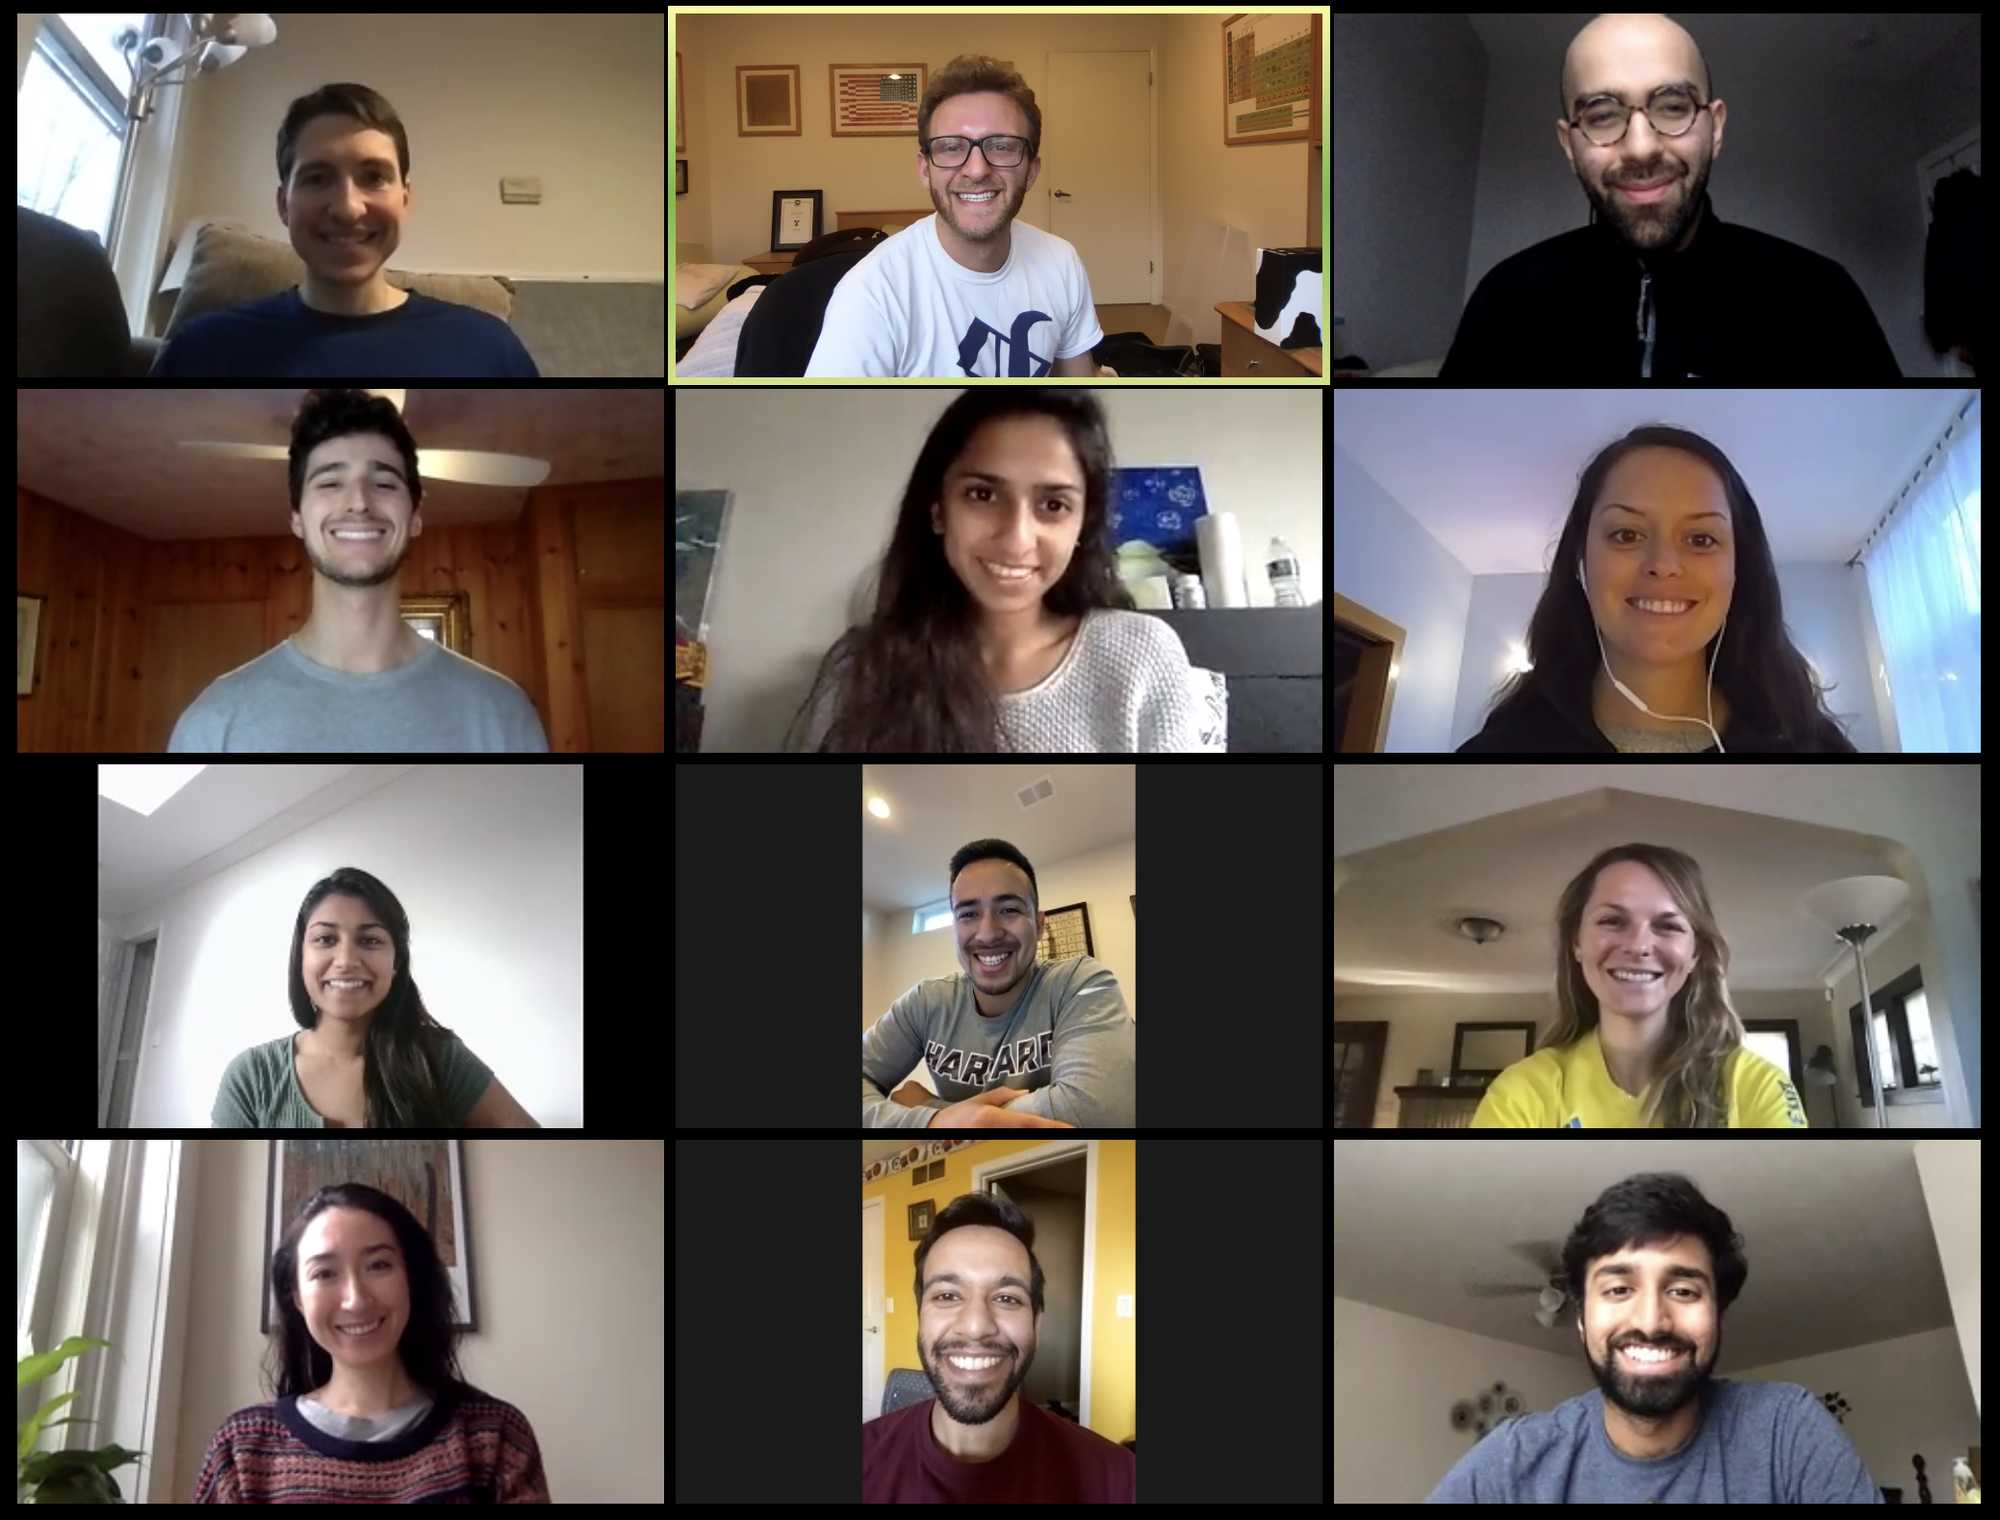 The leadership of the HMS COVID-19 Student Response Team — Michael Kochis, Derek Soled, Parsa Erfani, Benjamin Levy, Kruti Vora, Grace Baldwin, Shivangi Goel, David Velasquez, Kirstin Woody Scott, Danika Barry, Nishant Uppal, and Nicholos Joseph — meet on Zoom.